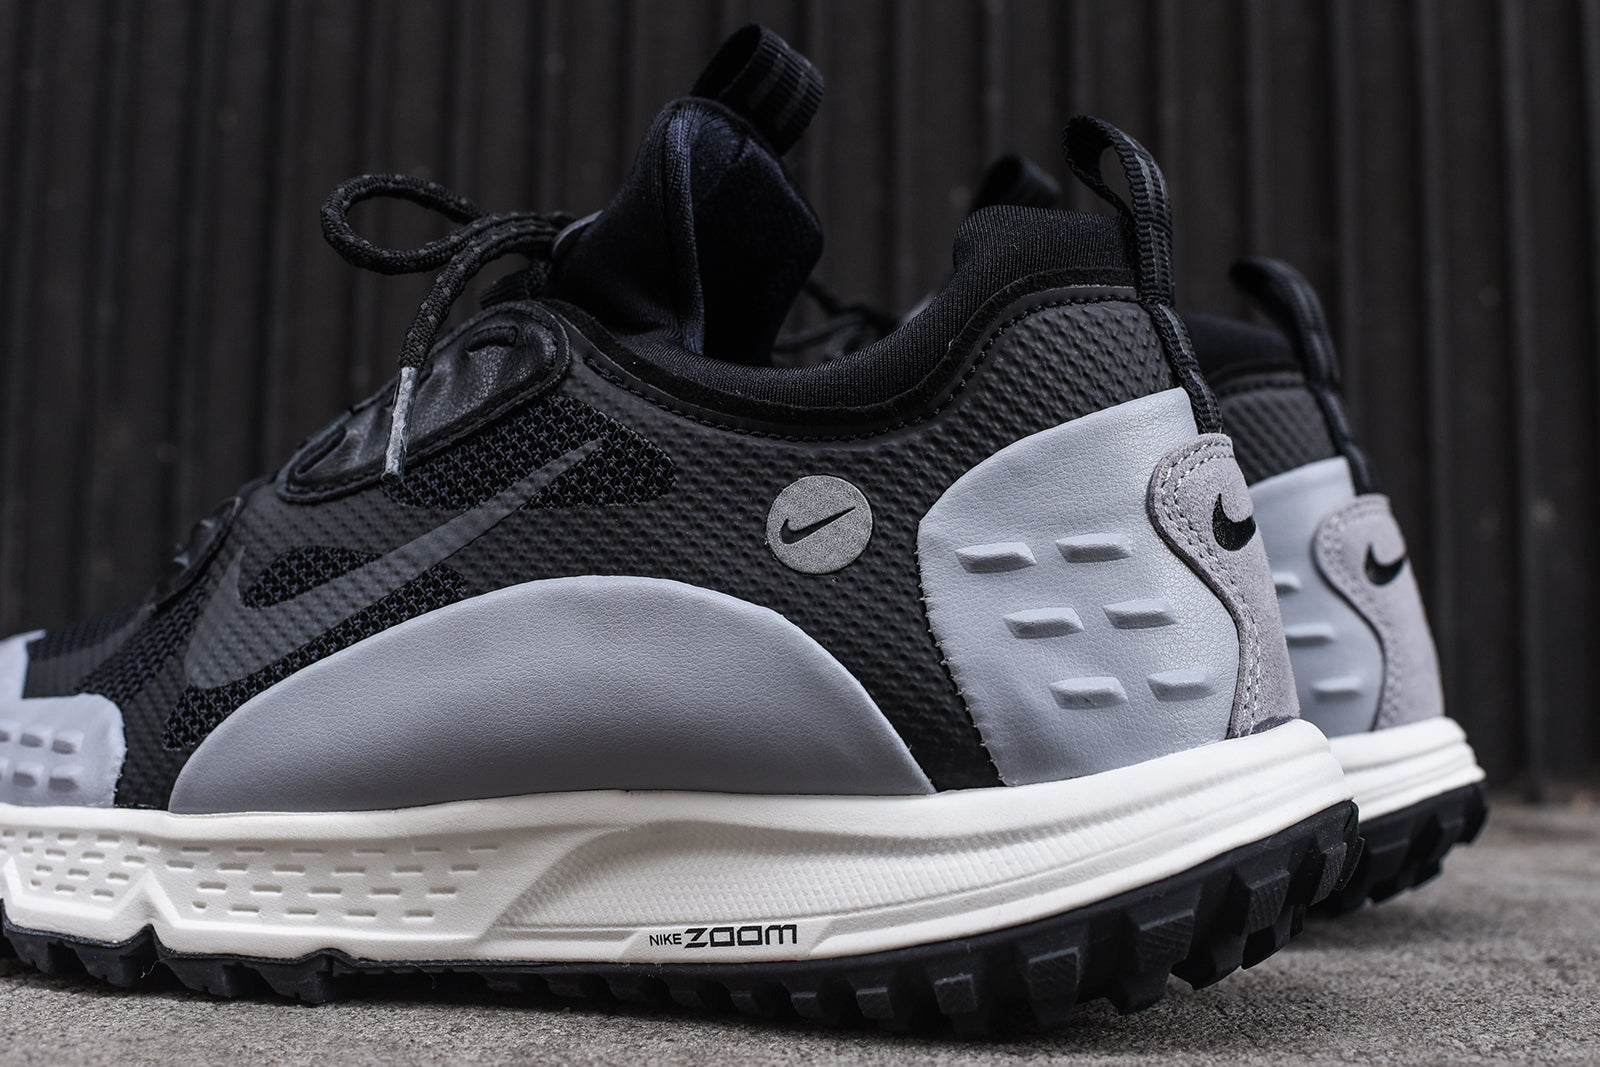 online retailer 25aec 5a8f5 Nike Air Zoom Albis  16 SP Pack – Kith